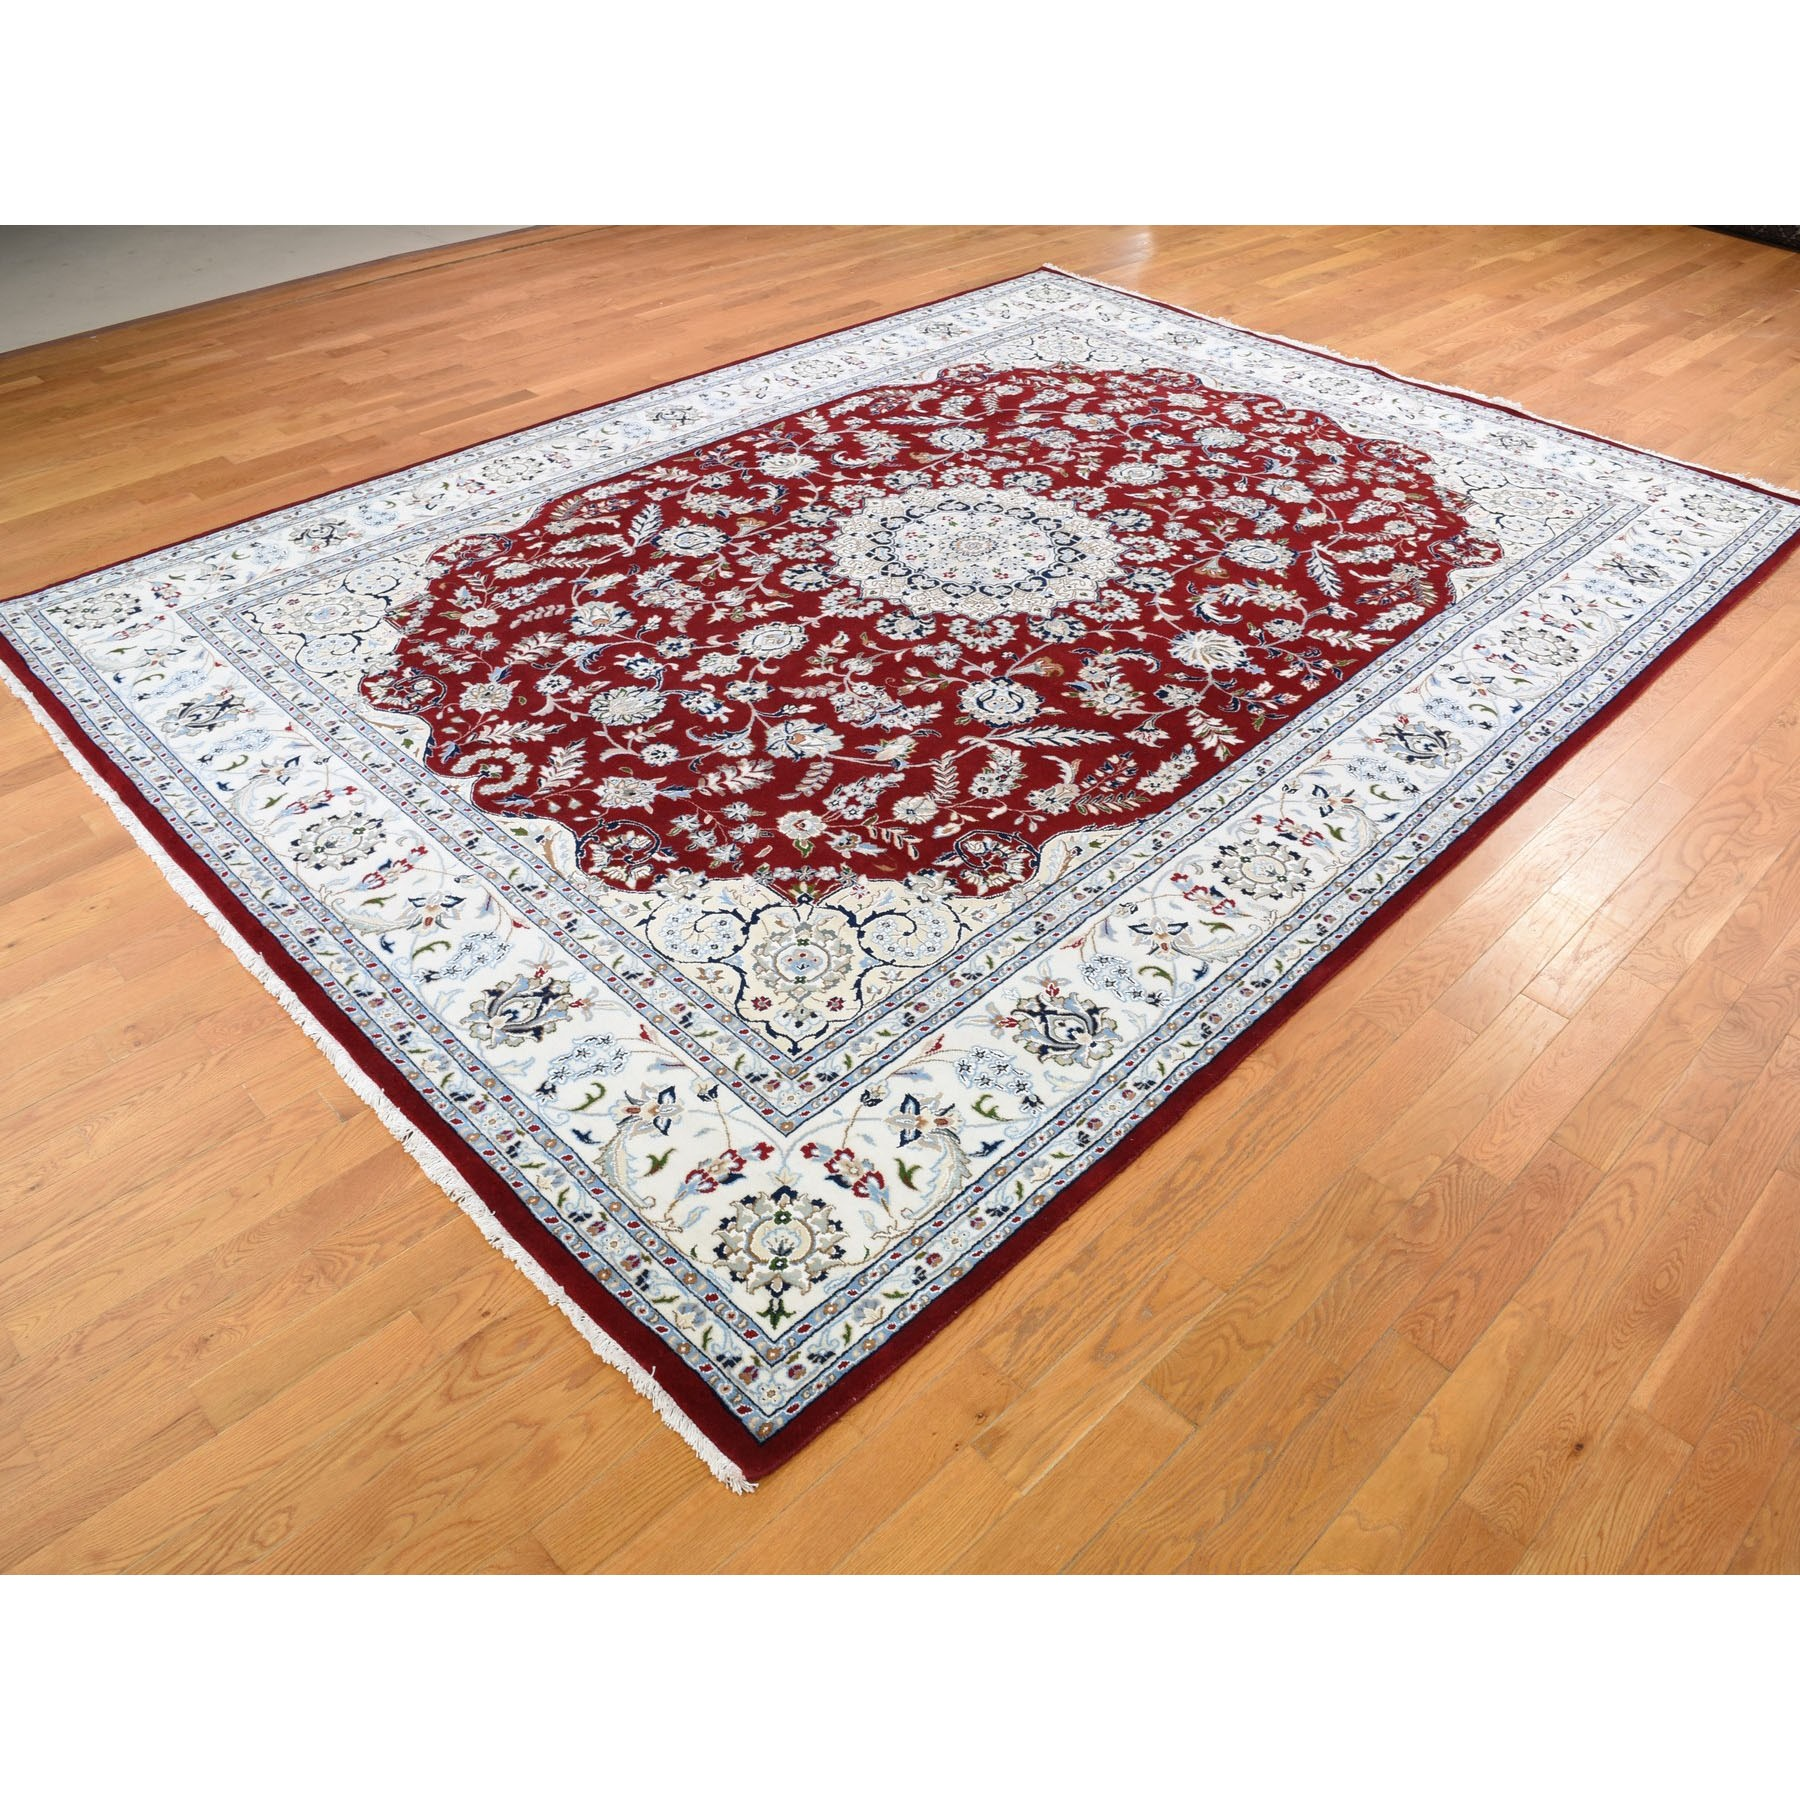 9-x12-1  Red Wool and Silk Nain 250 KPSI Hand Knotted Oriental Rug